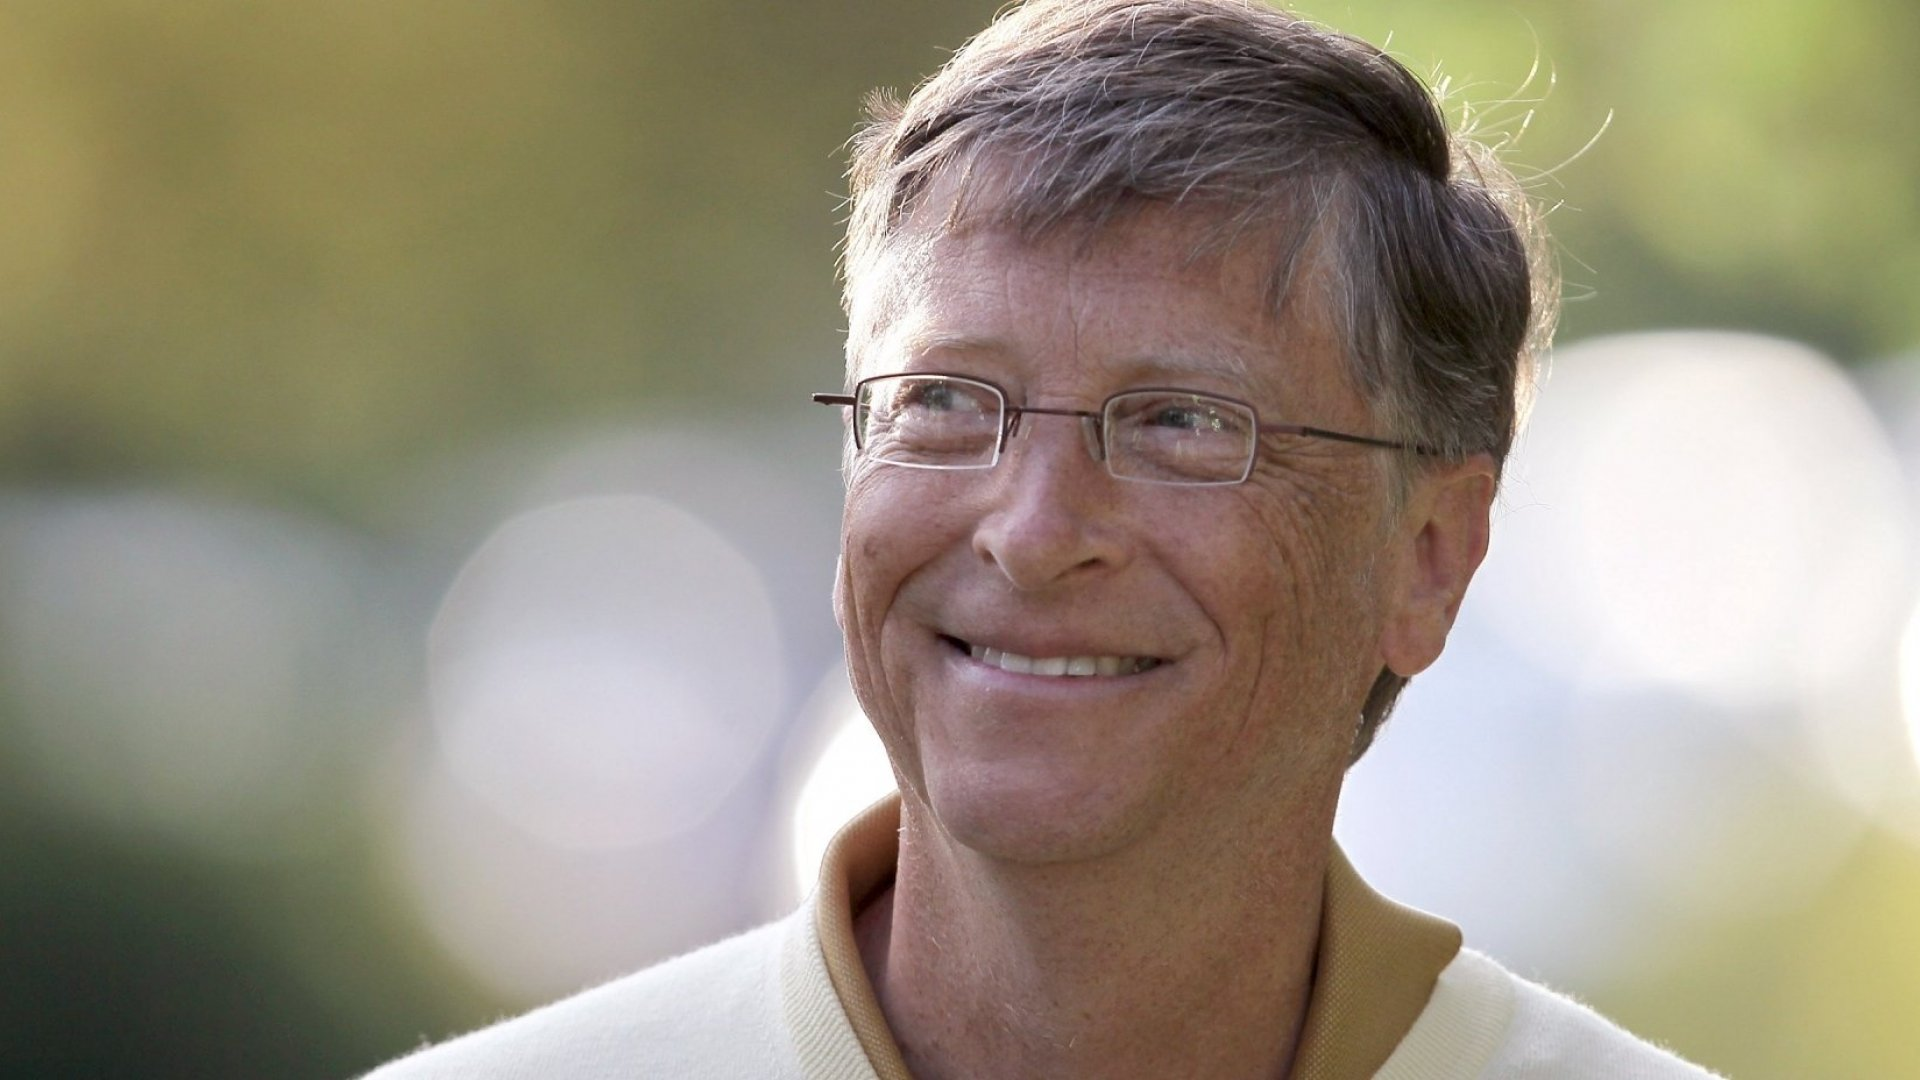 Bill Gates for President? A New Poll Suggests He'd Do Pretty Well